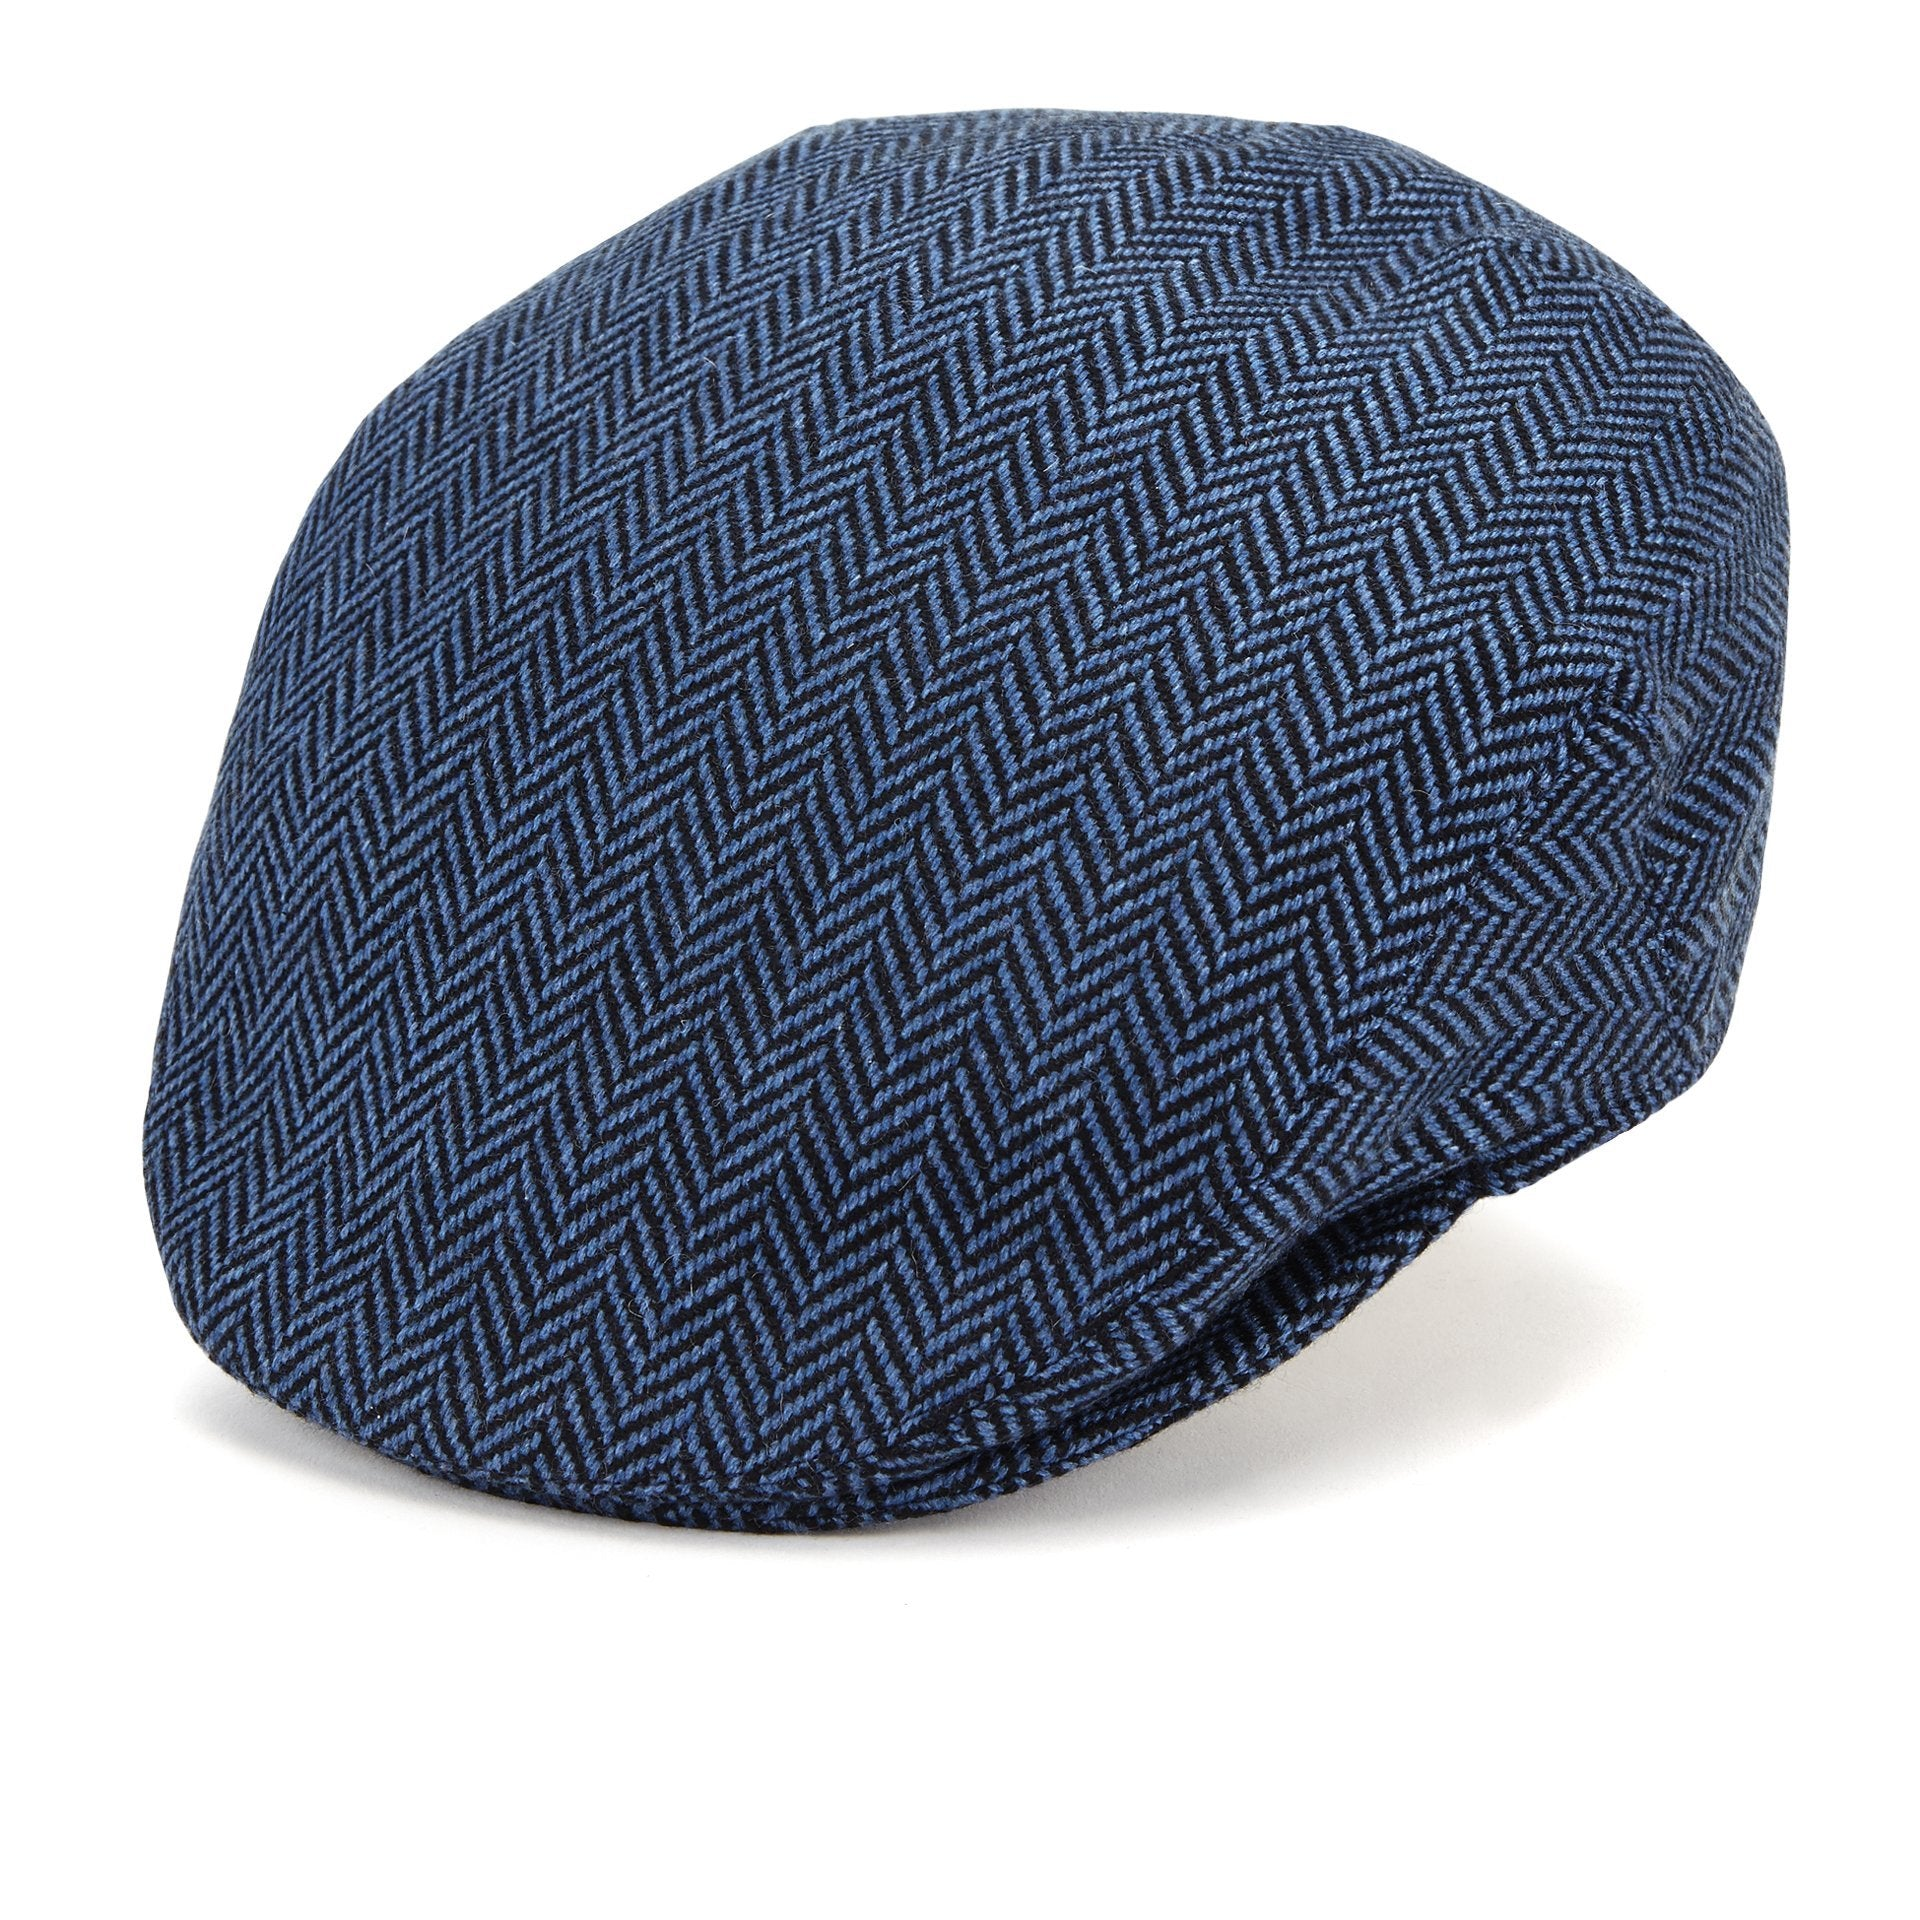 Cashmere gill flat cap - Flat caps - Lock & Co. Hatters London UK